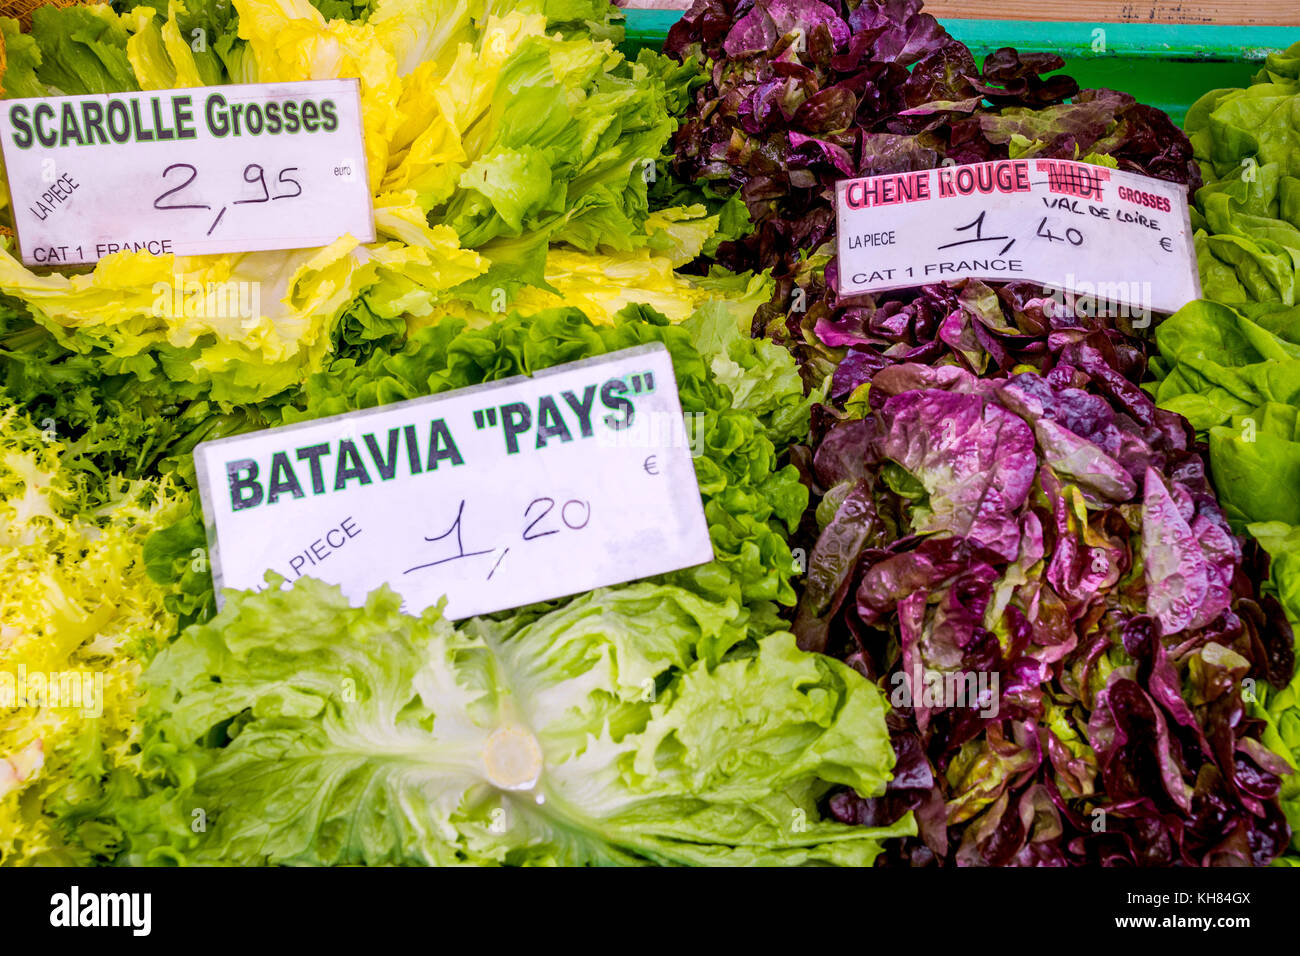 Market stall with French lettuces - France. - Stock Image